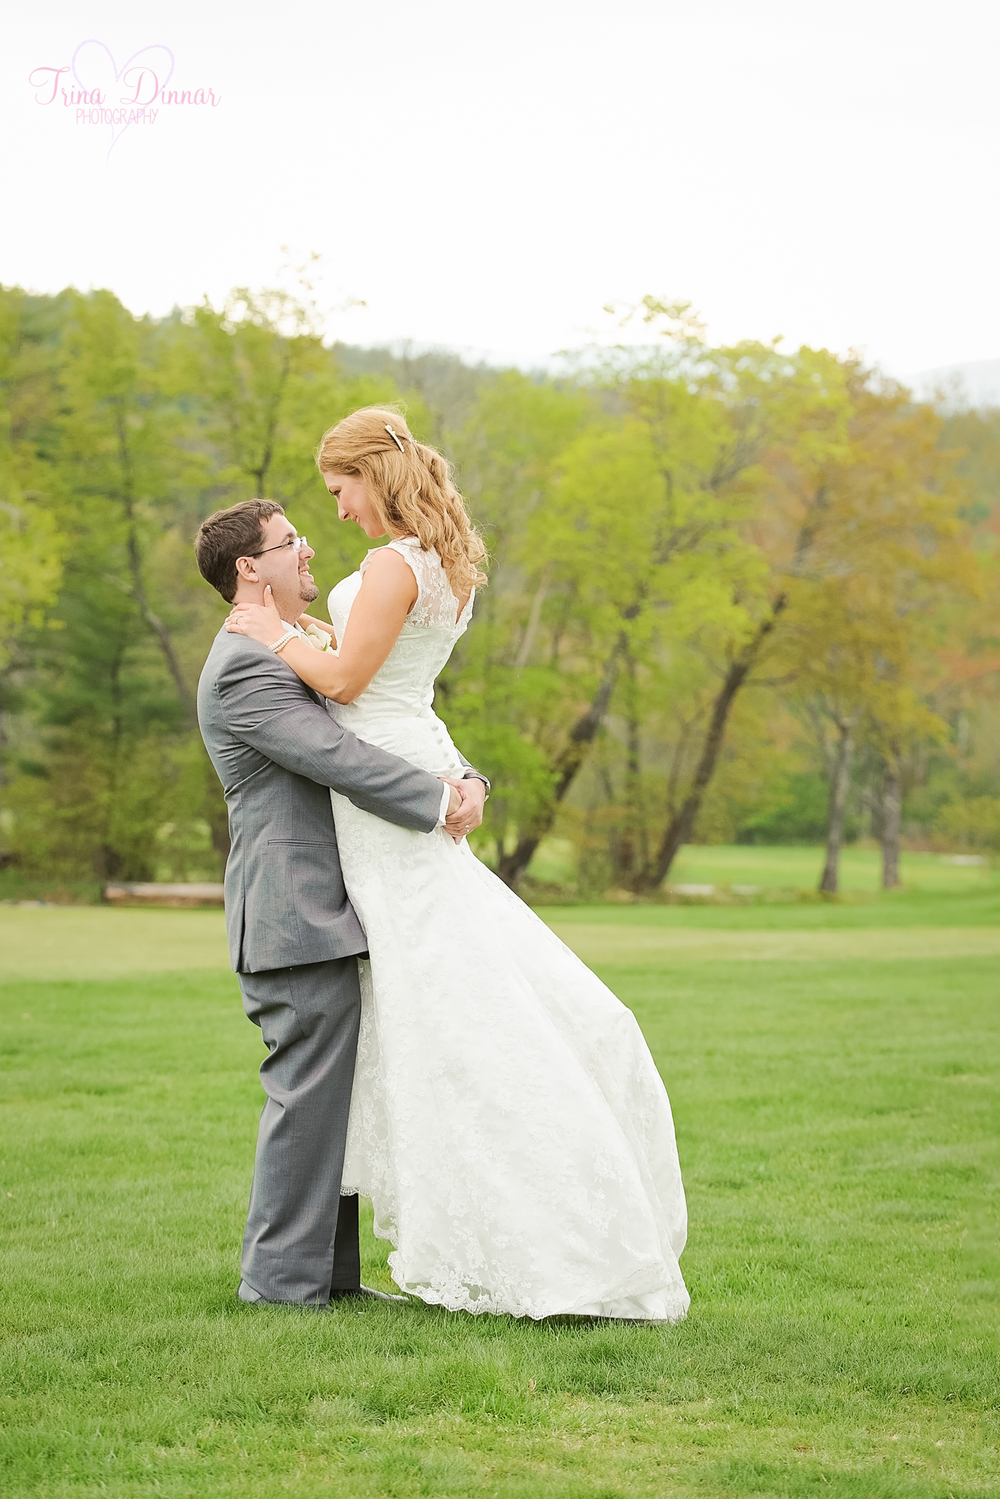 Southern Maine wedding photographer traveling throughout ME and NH. Bride and Groom kiss on the golf course.